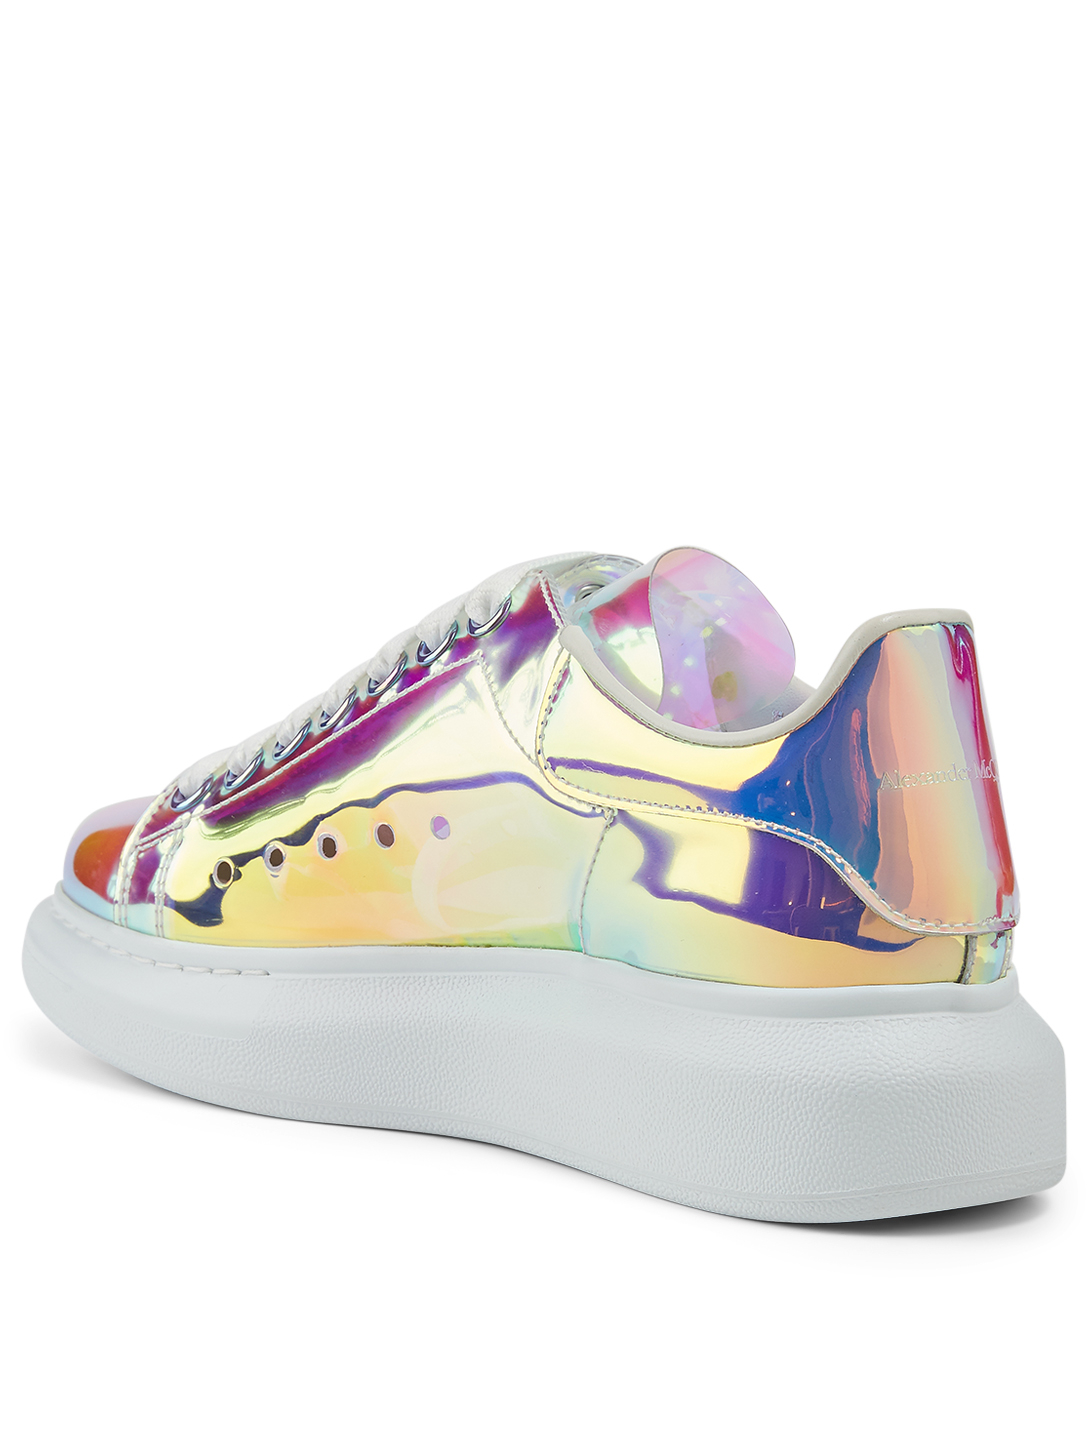 ALEXANDER MCQUEEN Oversized Iridescent Sneakers Women's Multi